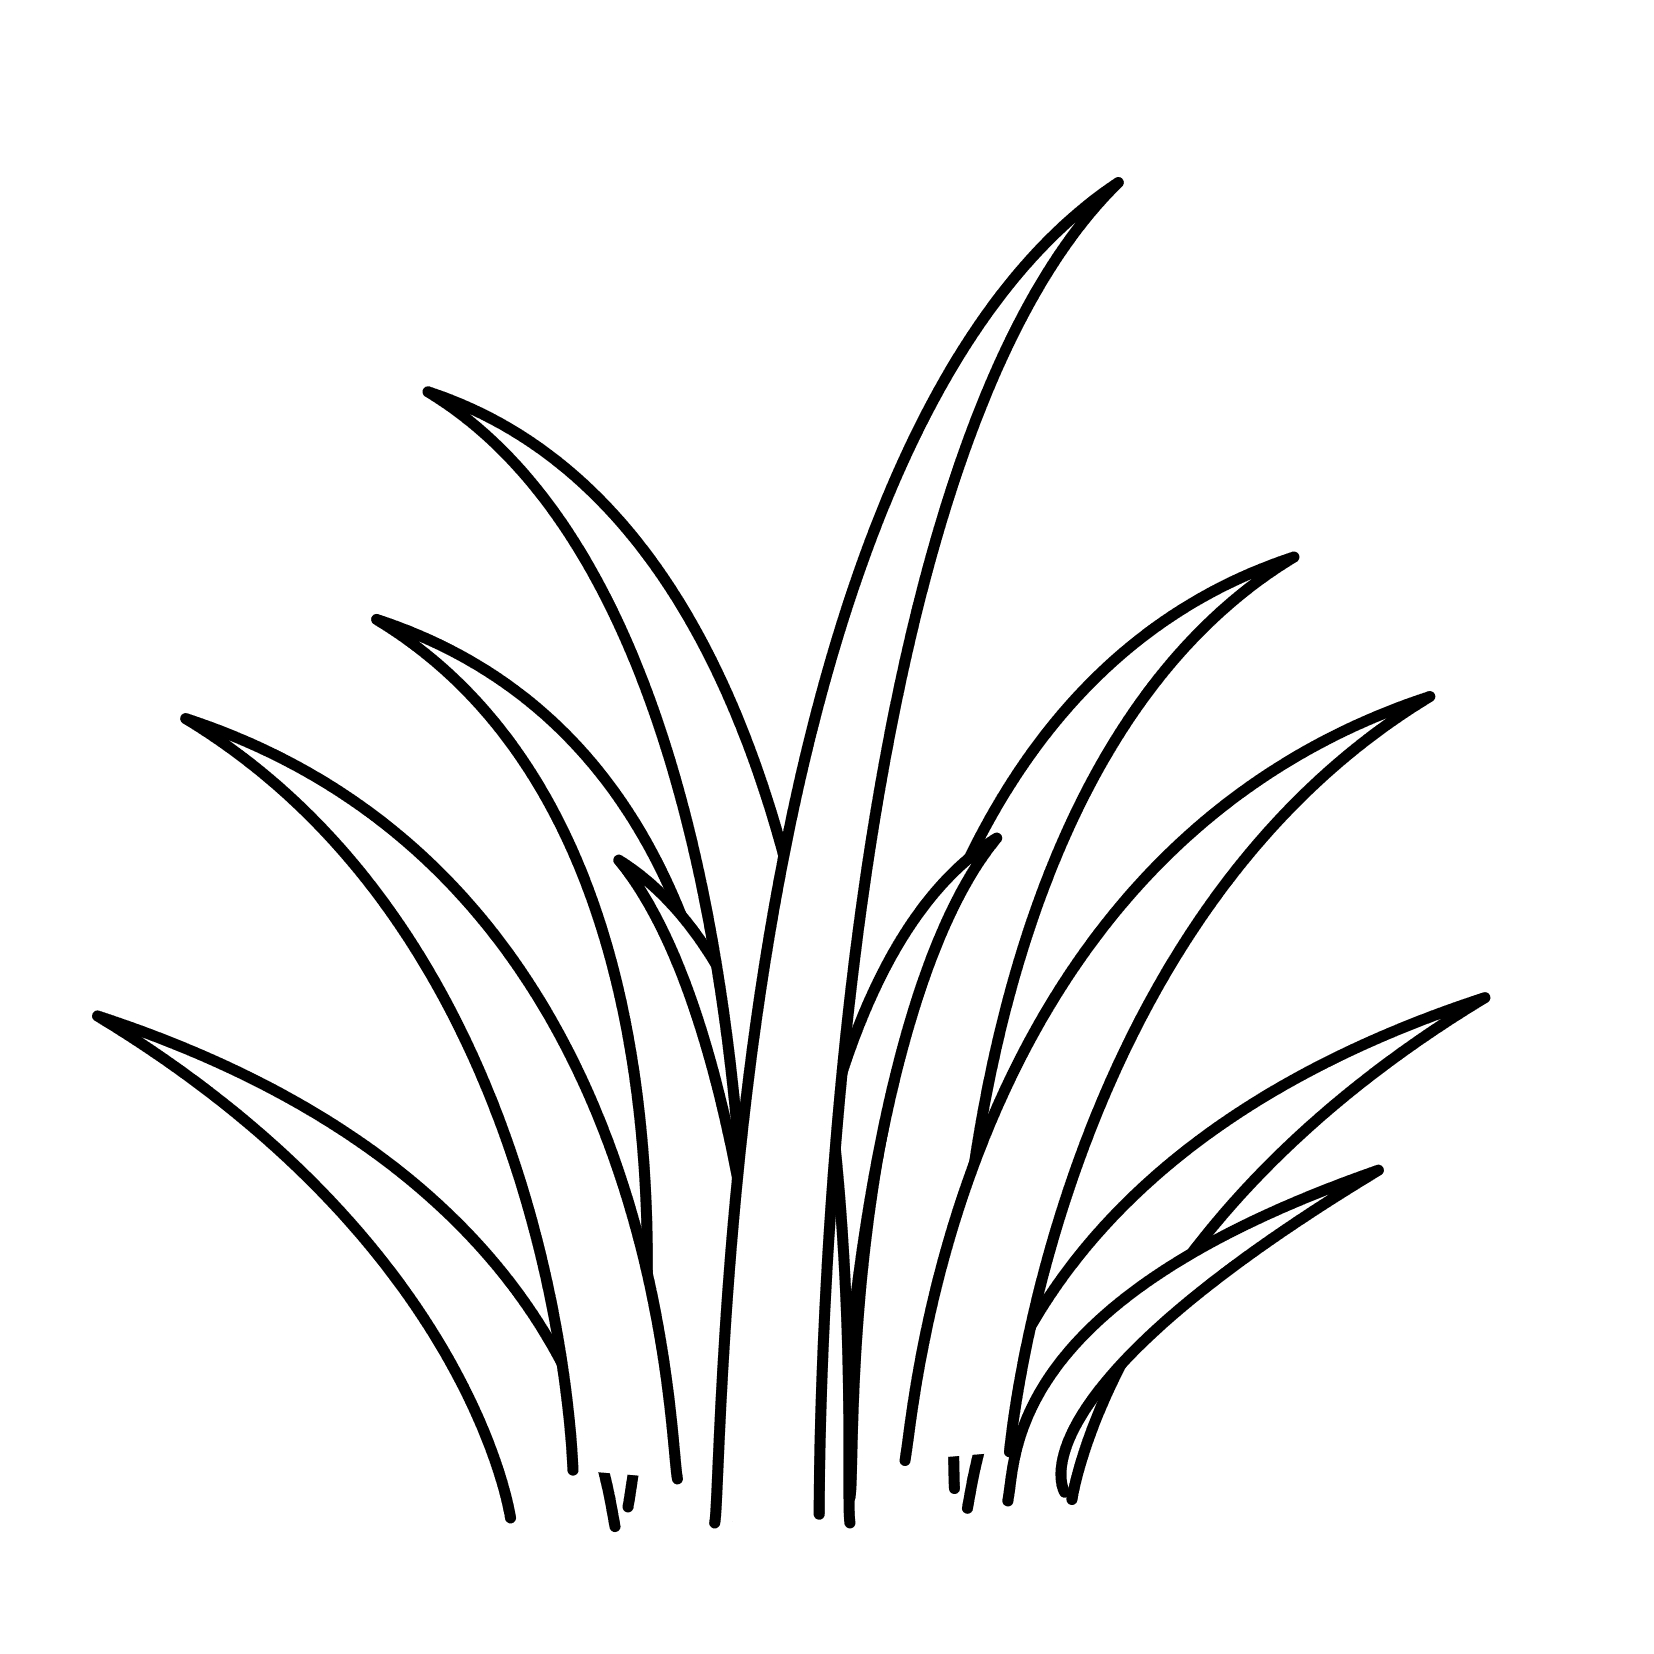 Bush clipart outline. New grass black and